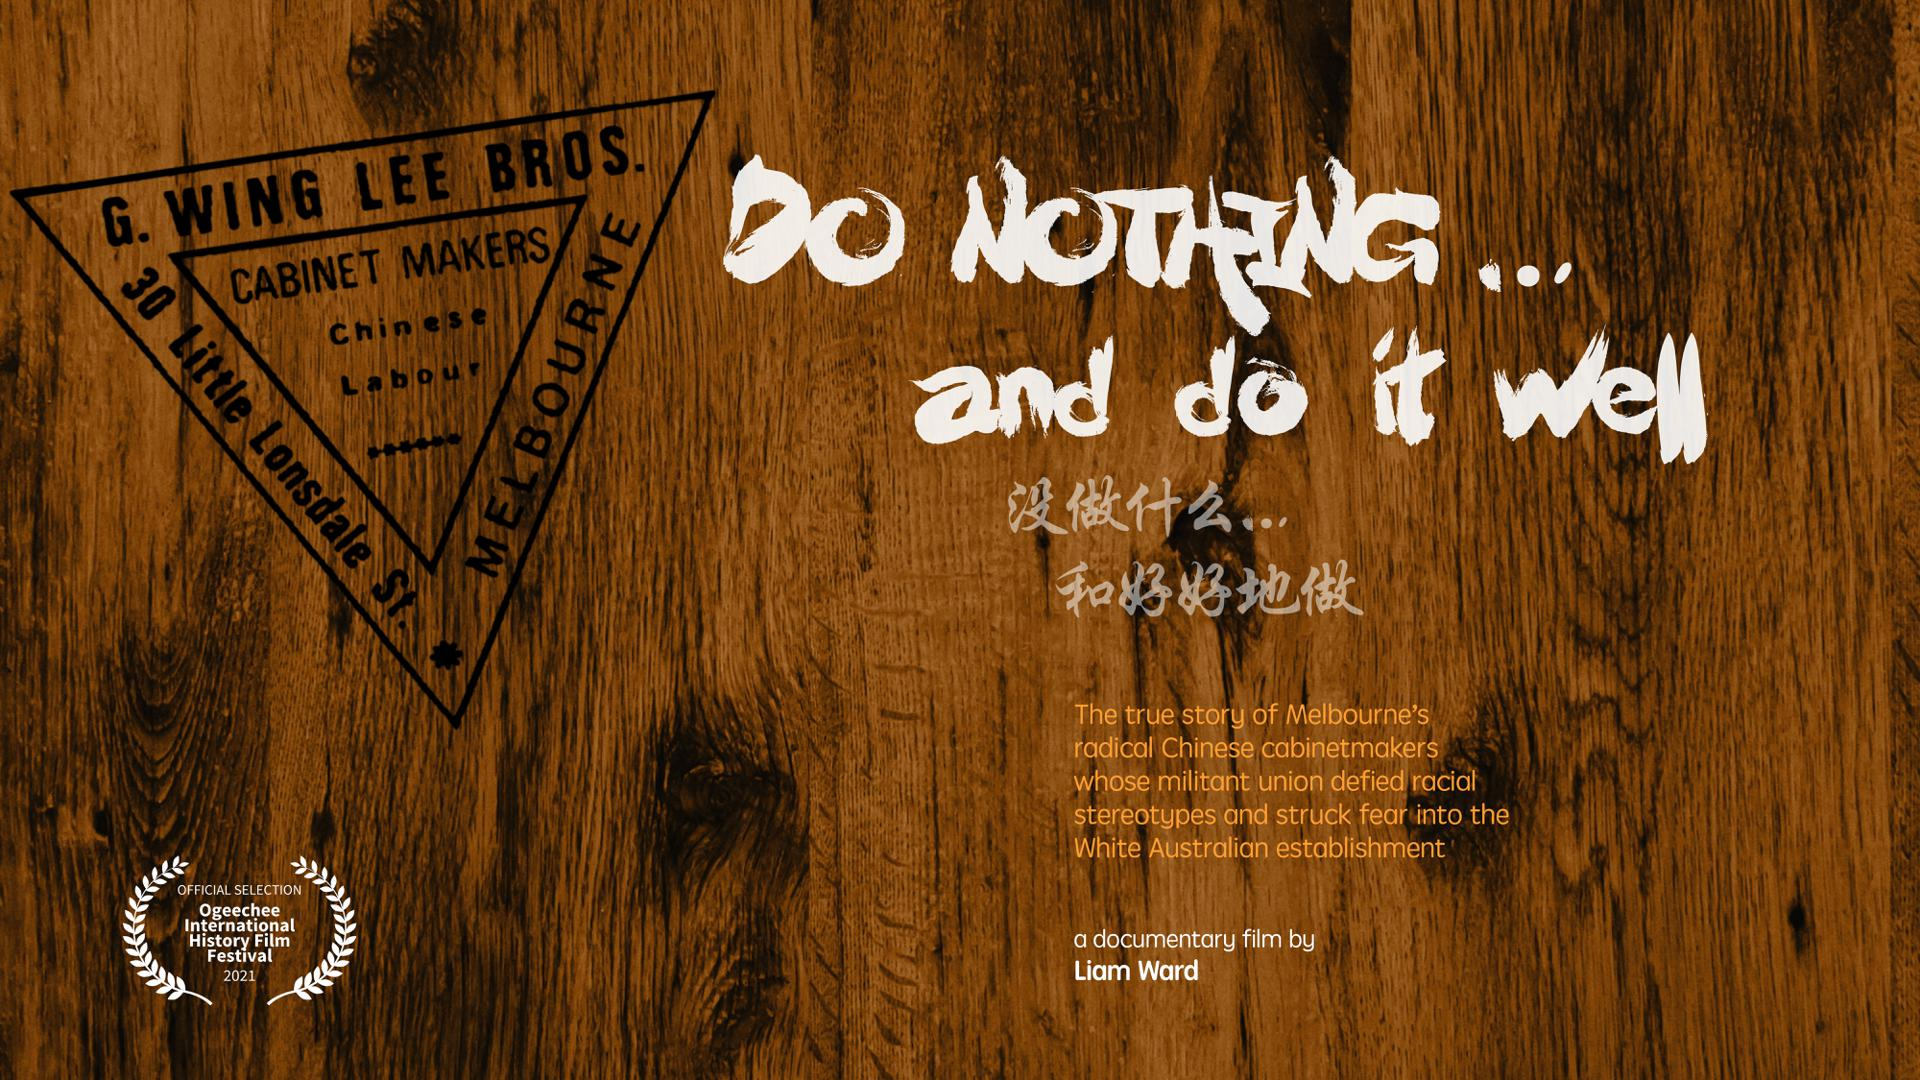 DO NOTHING AND DO IT WELL      (To play film click circle button to the right. (to add to watchlist, click + button below it)